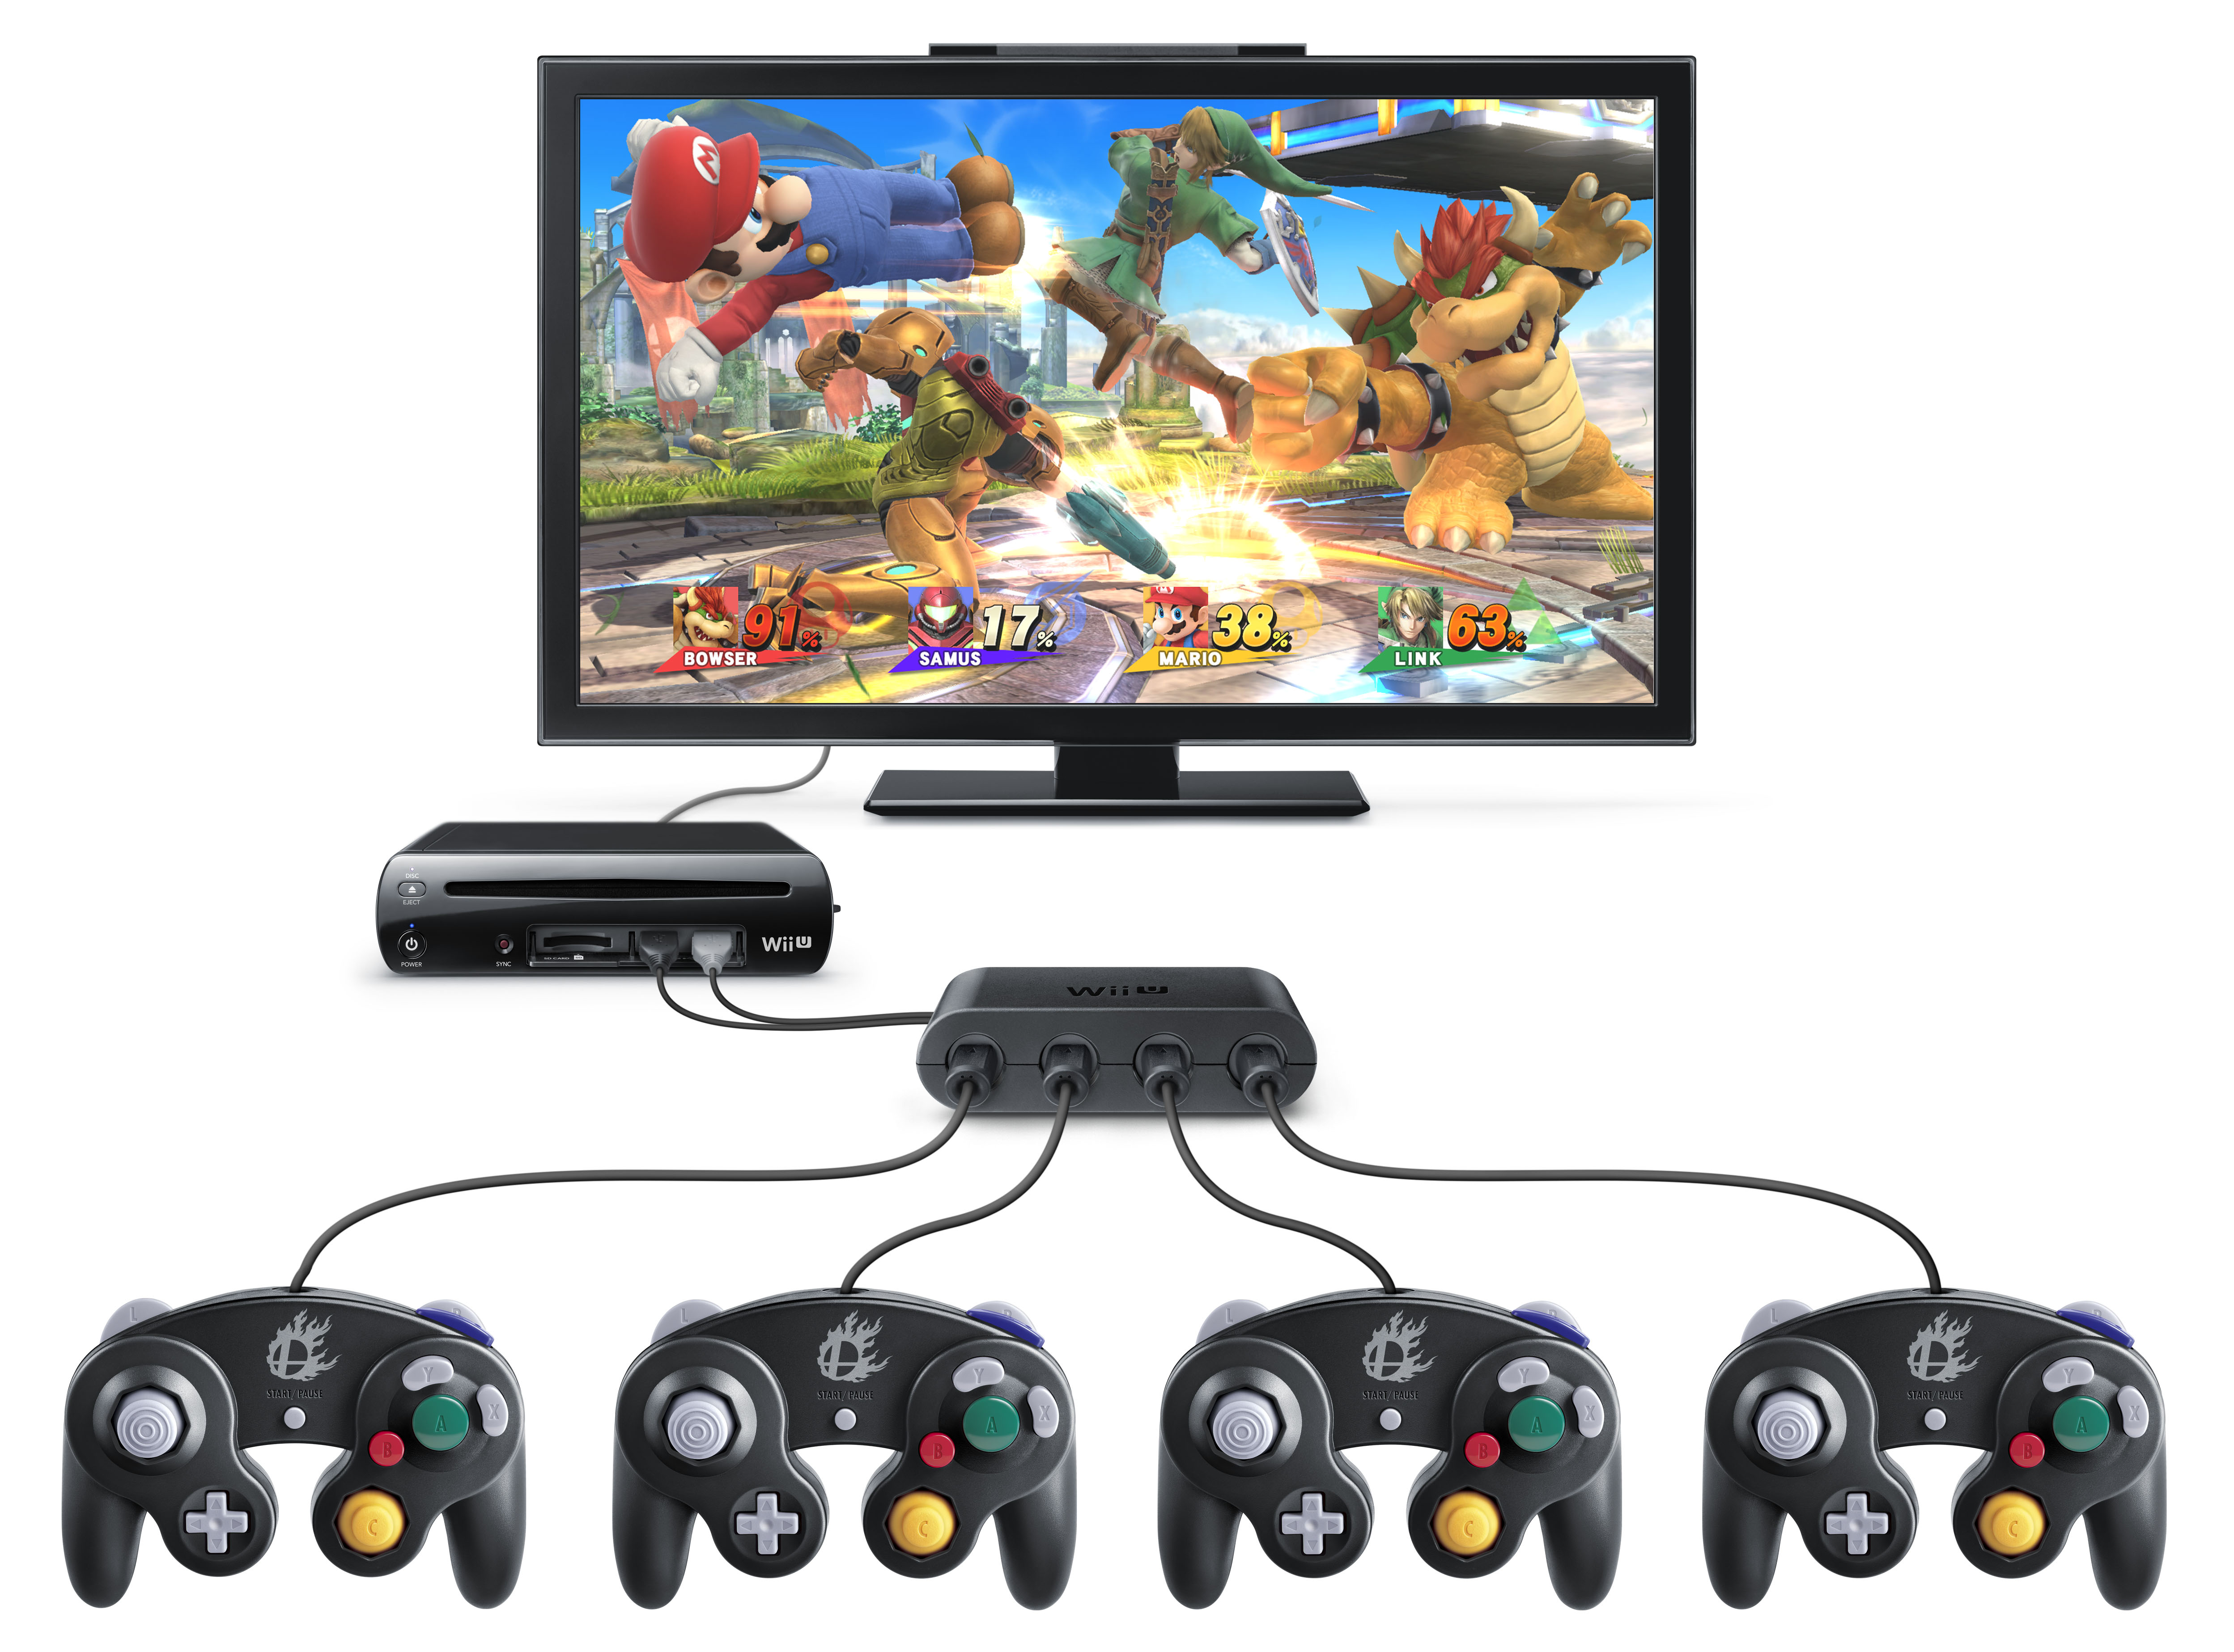 Hook up gamecube to mac